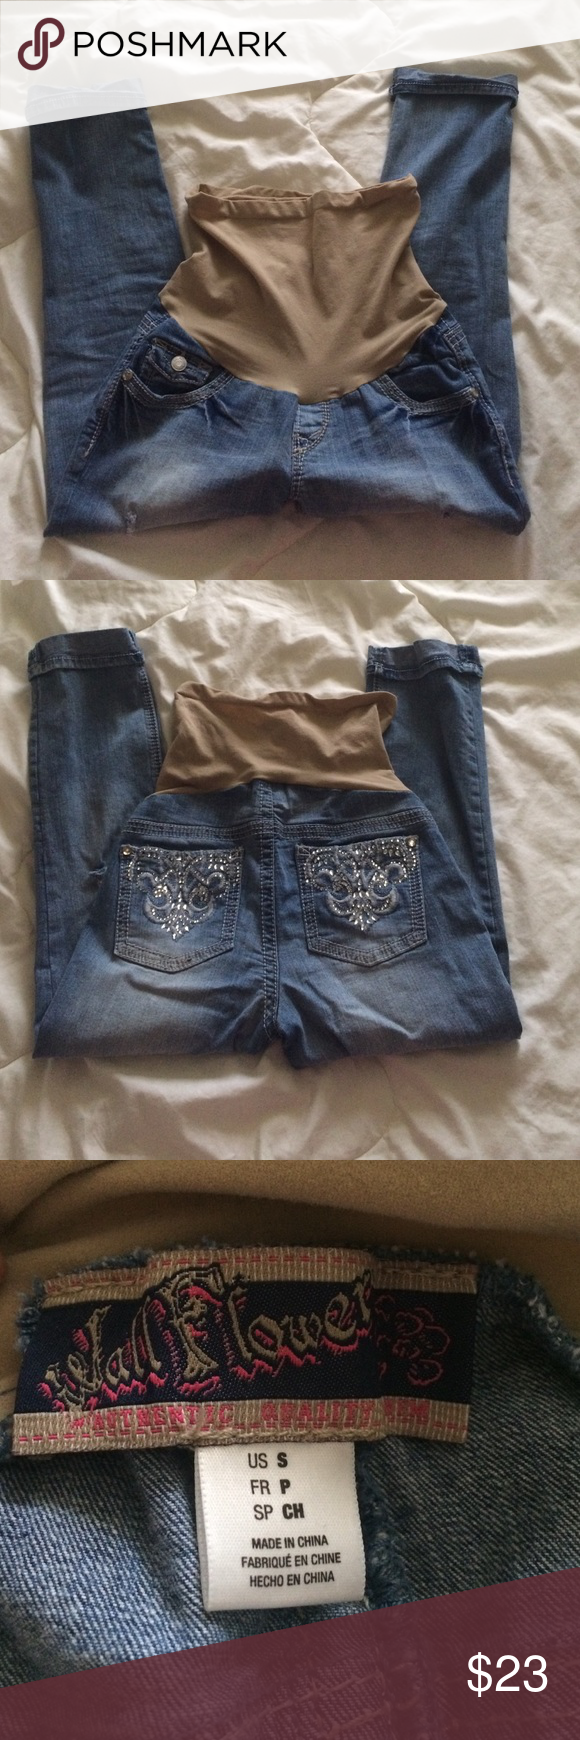 Motherhood distressed maternity jeans Motherhood distressed maternity jeans. They are very comfy and cute! In excellent condition.  They have been worn a few times only and never been dried in the dryer. Size small. Motherhood Maternity Other